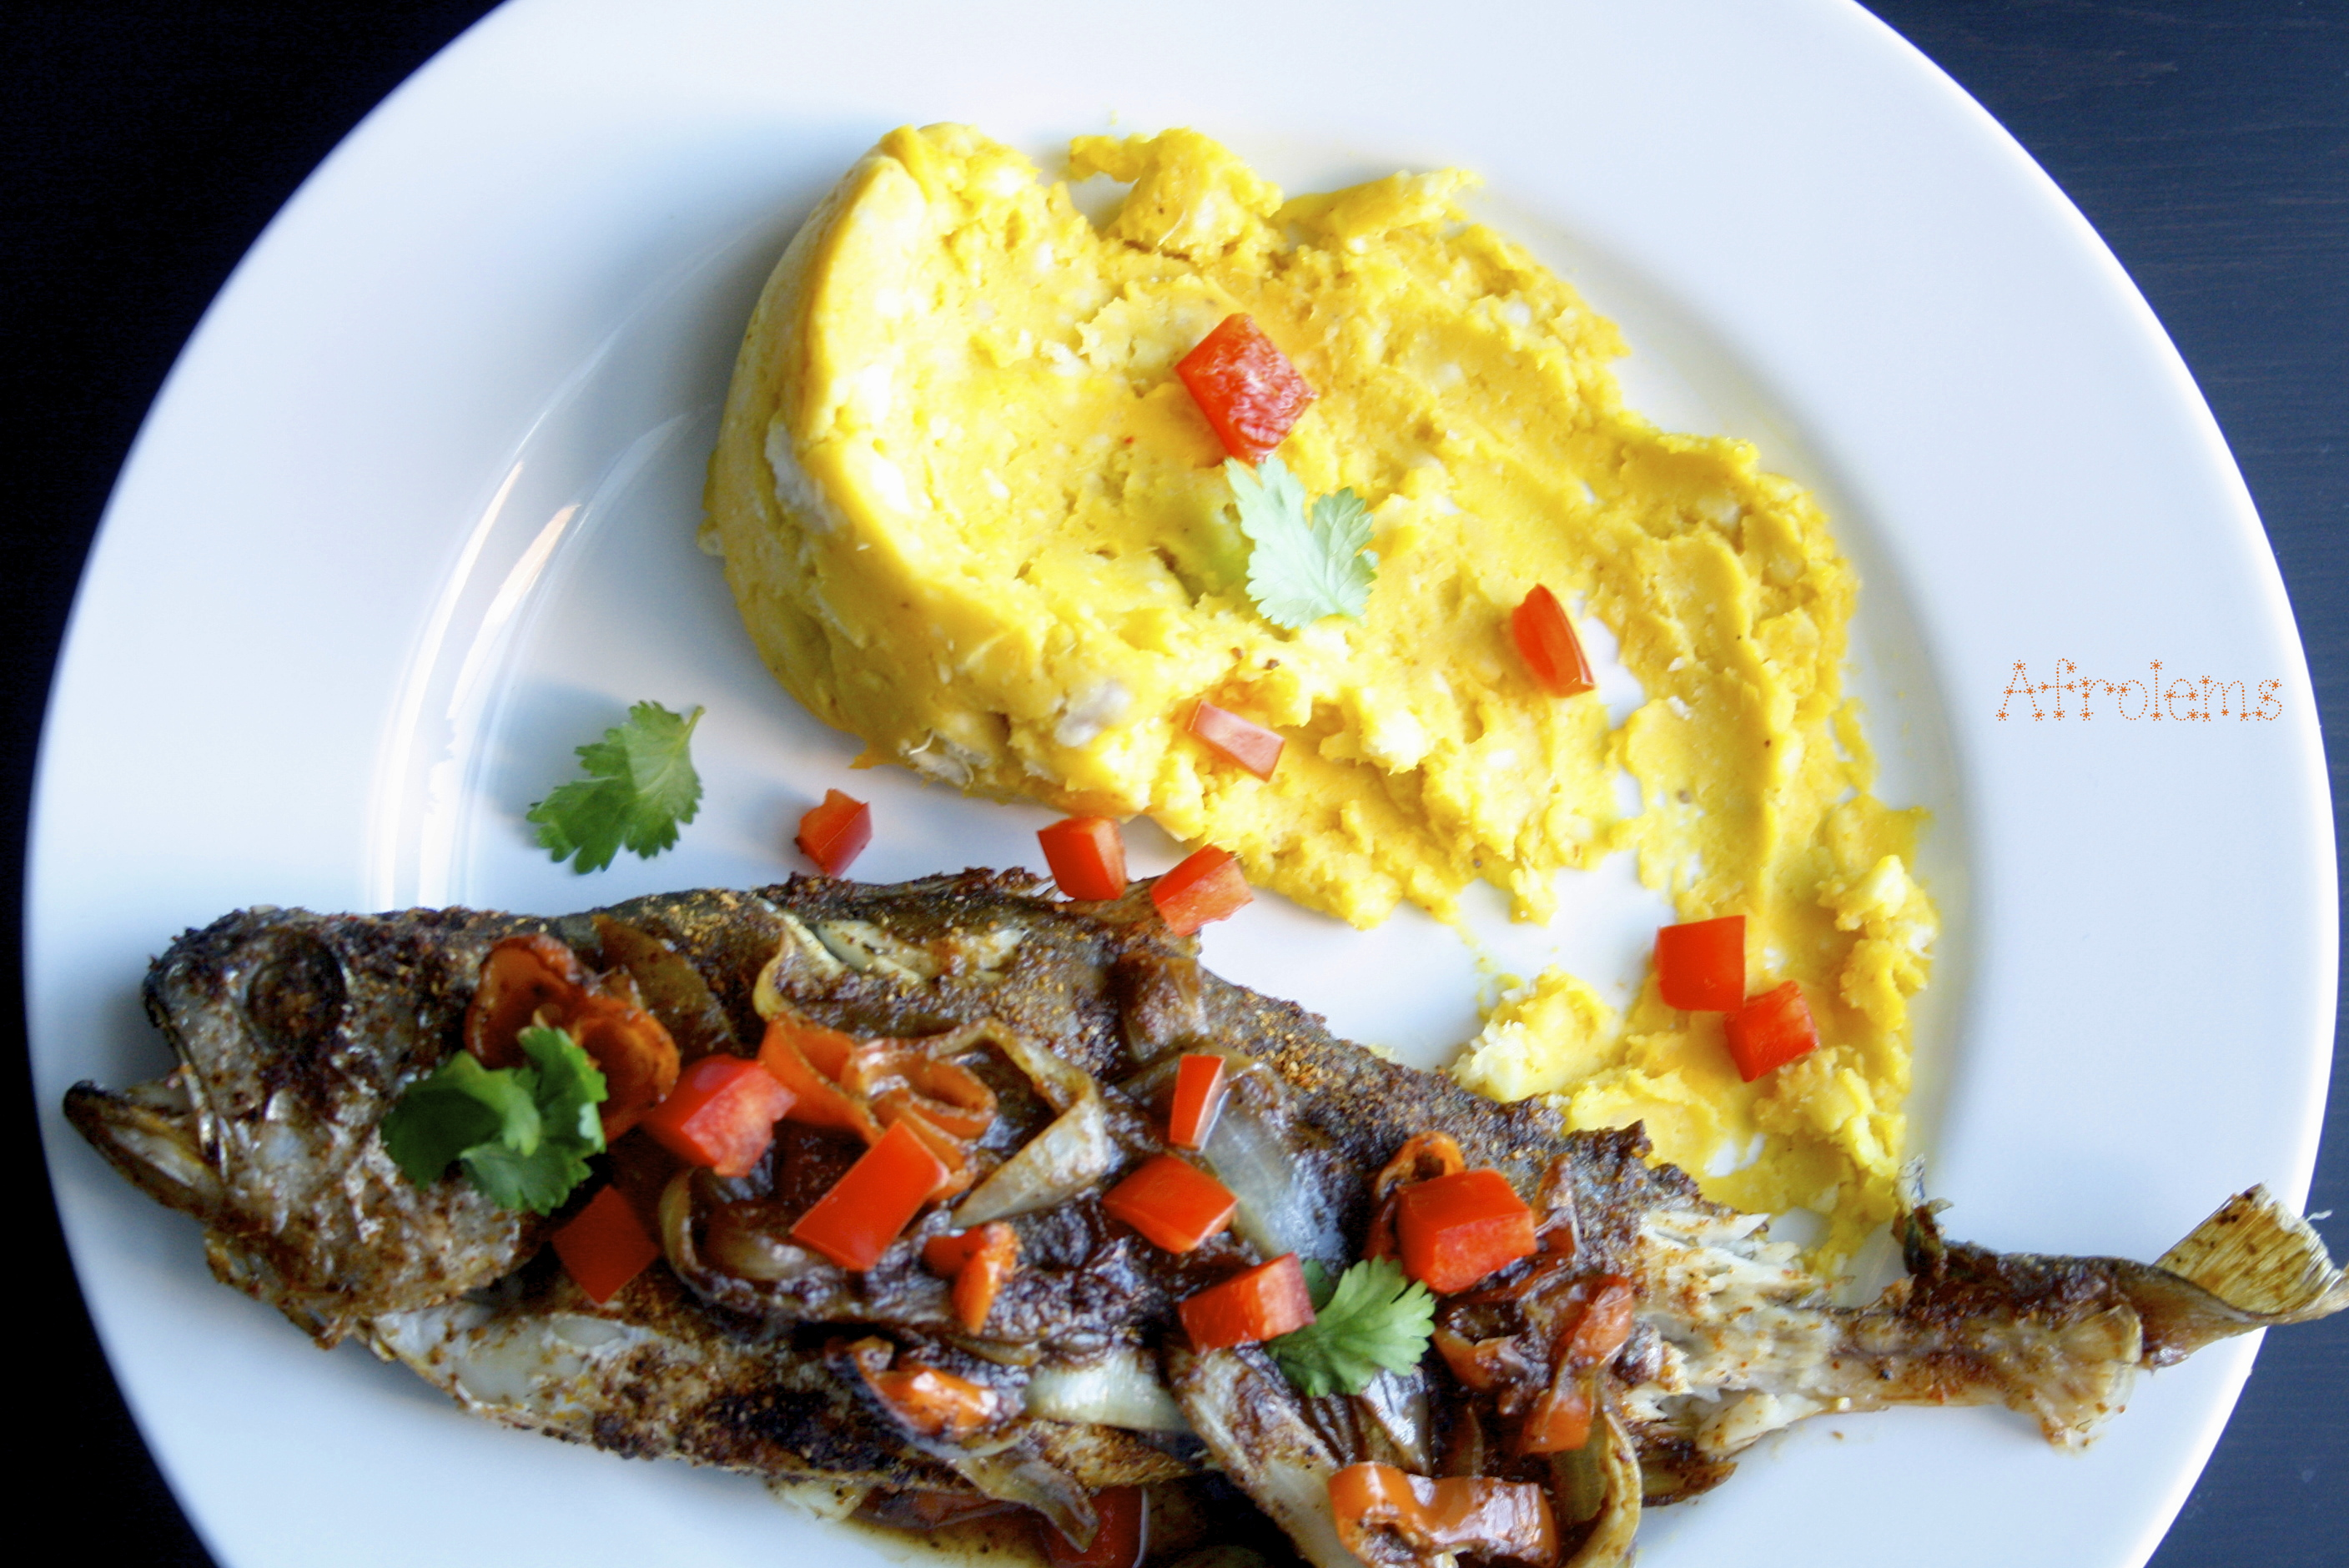 Spicy croaker fish and mashed yam for Croaker fish recipe